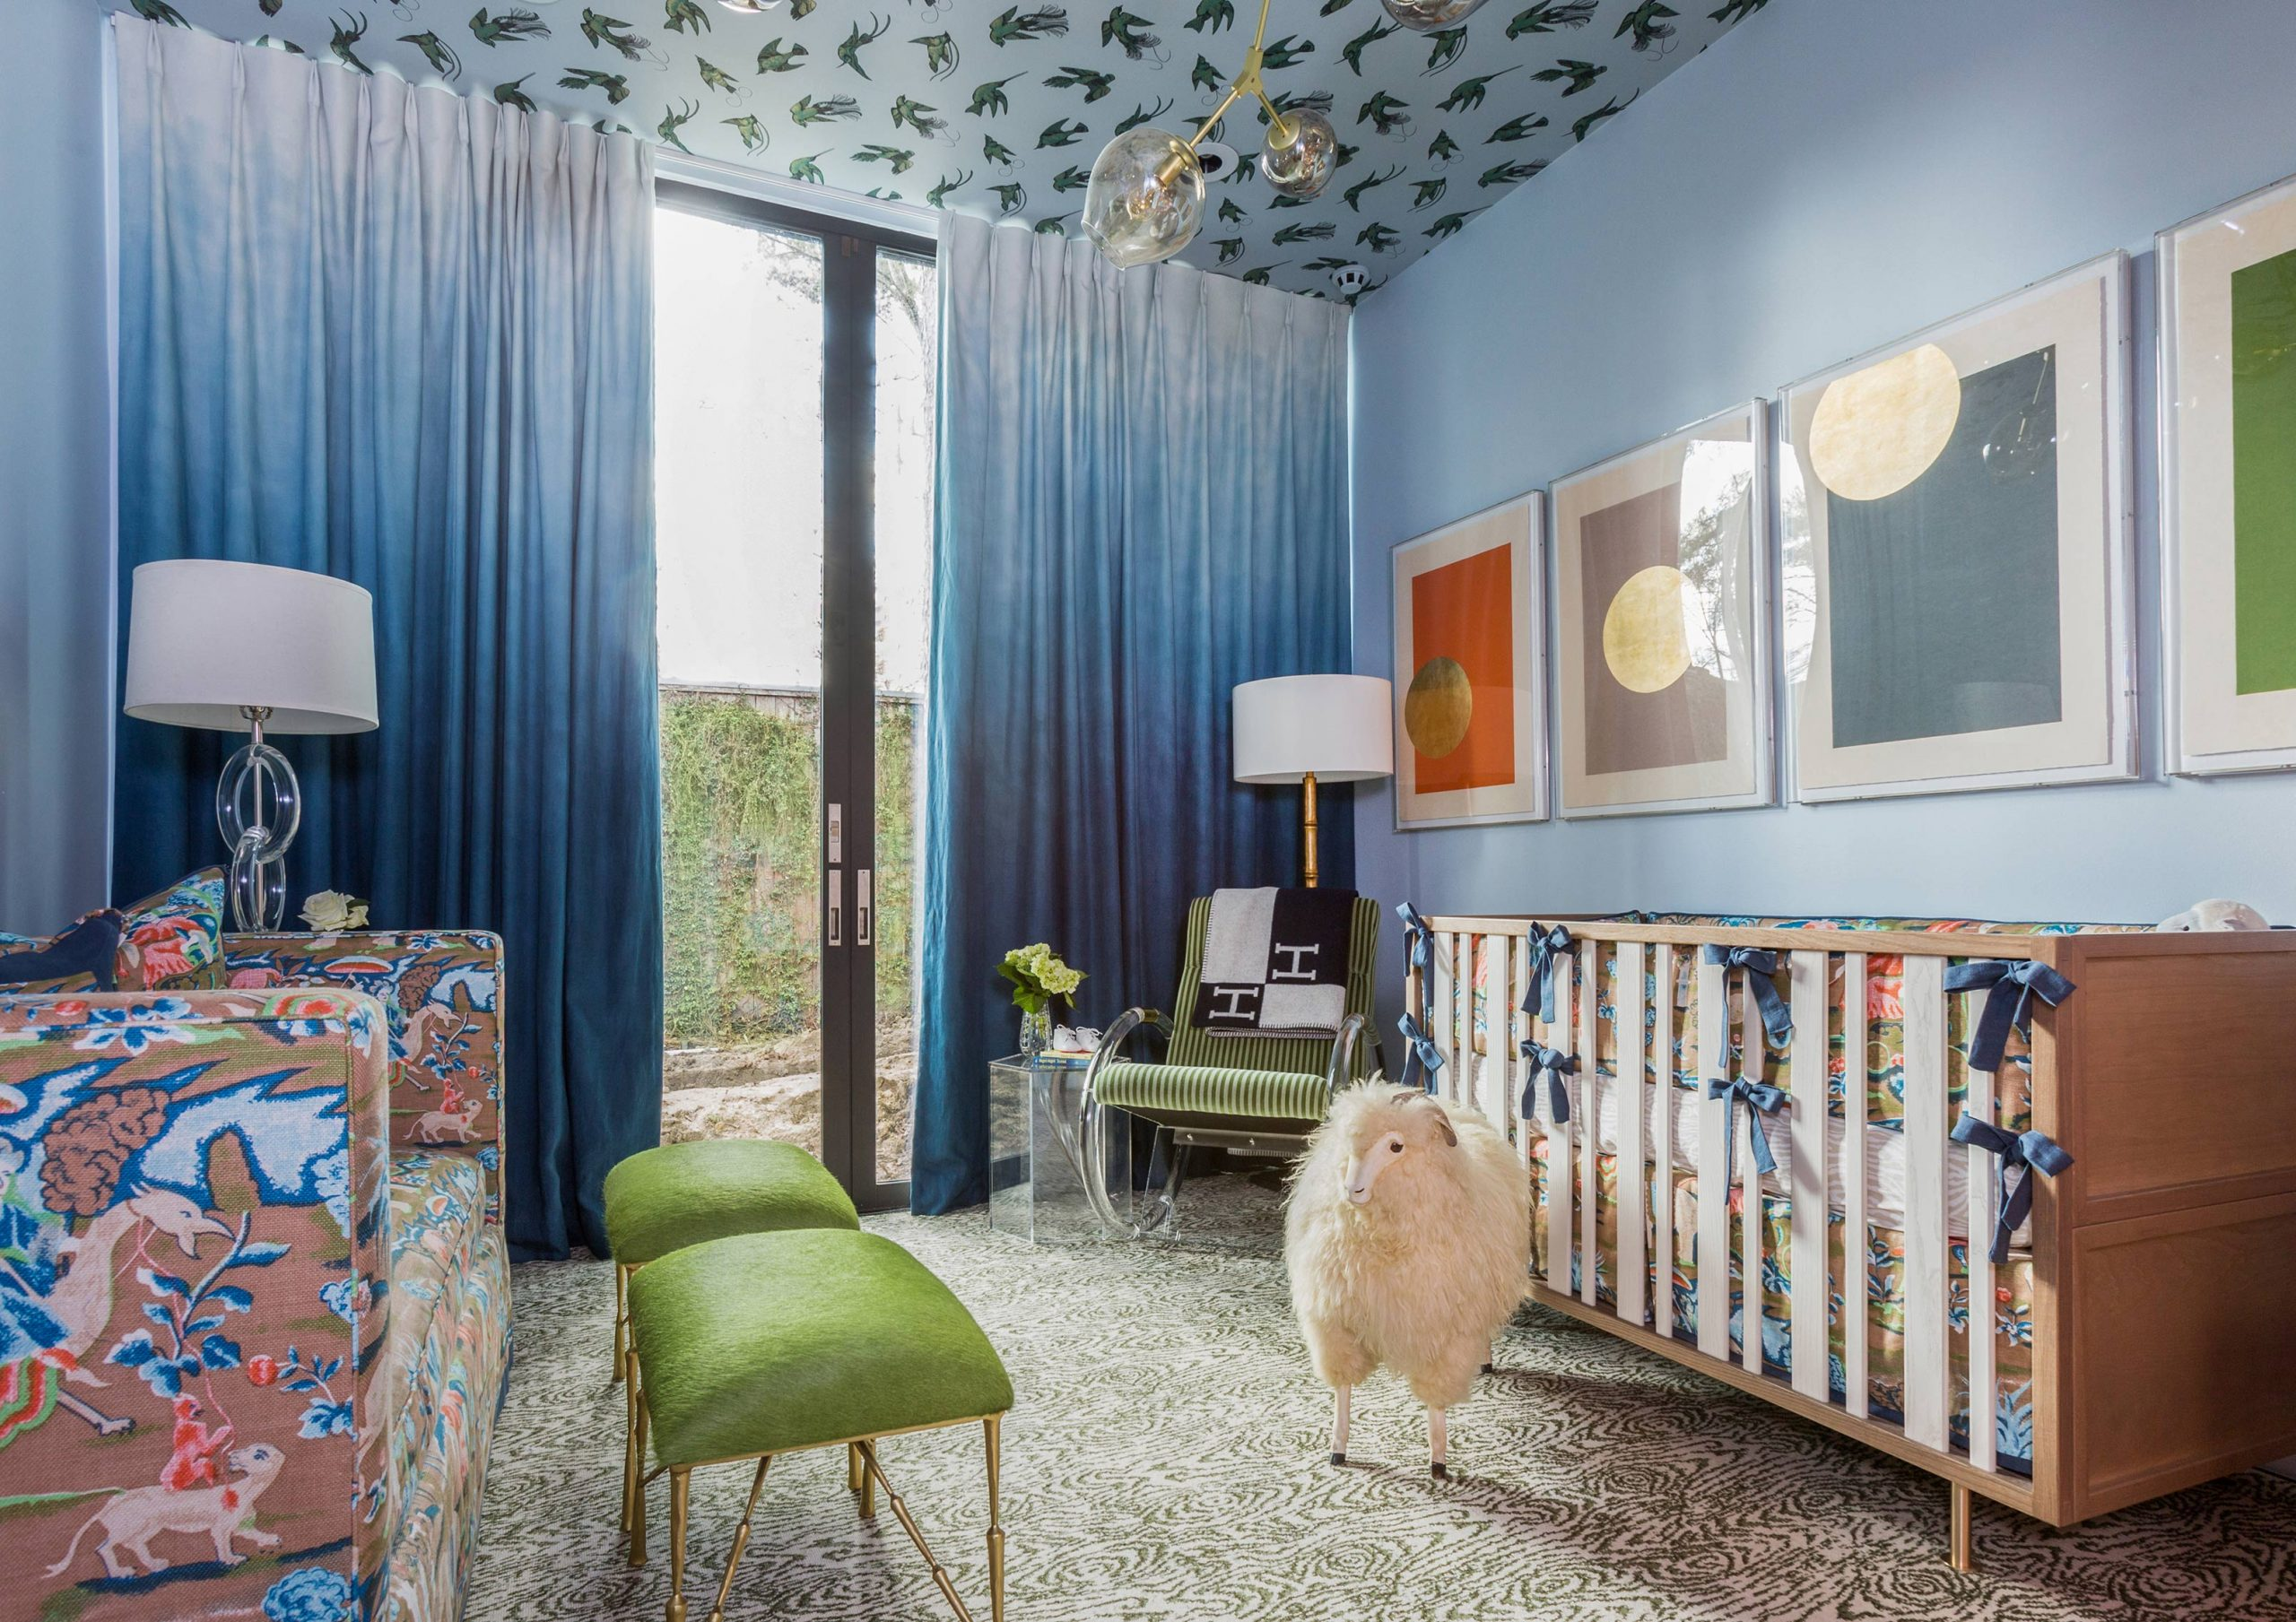 kids bedroom with blue accents - Creative Tonic